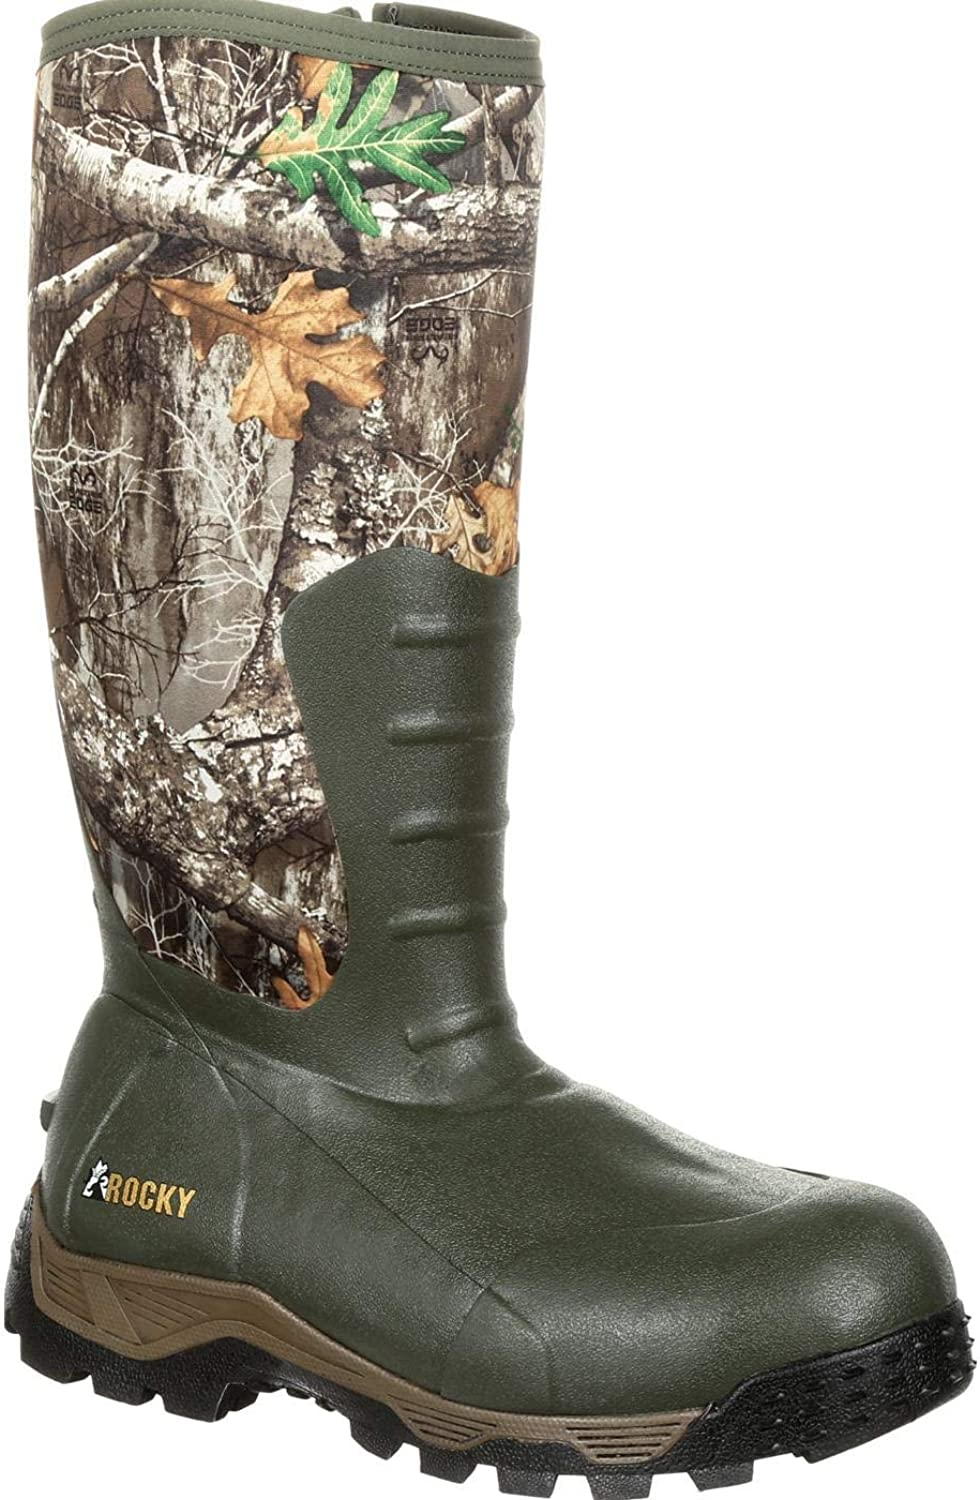 Rocky Mens Sport Pro Rubber 1200G Insulated Waterproof Outdoor Outdoor Boots